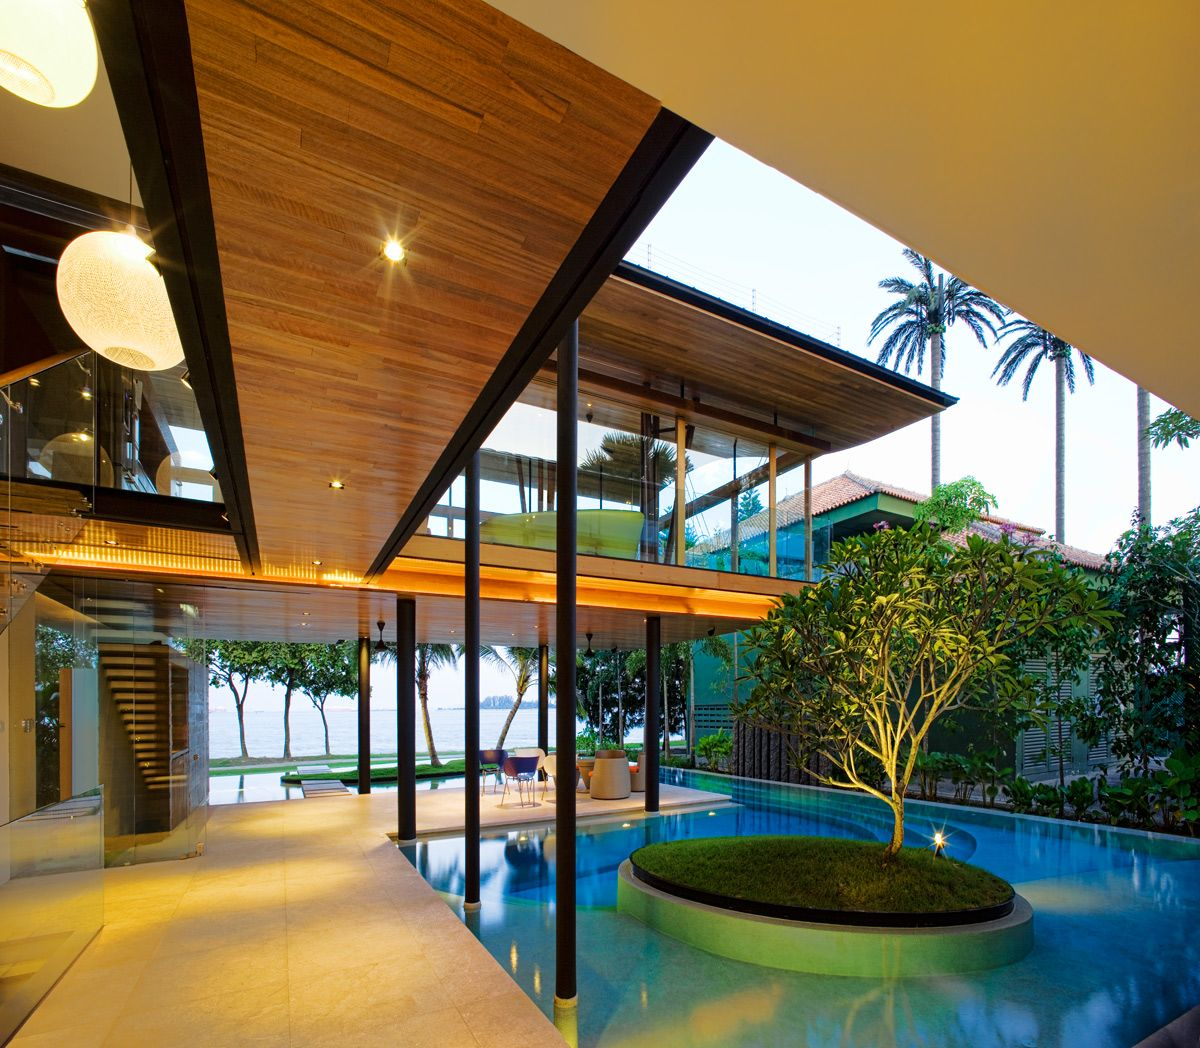 Luxury fish house in singapore - La residence exotique fish house singapour ...